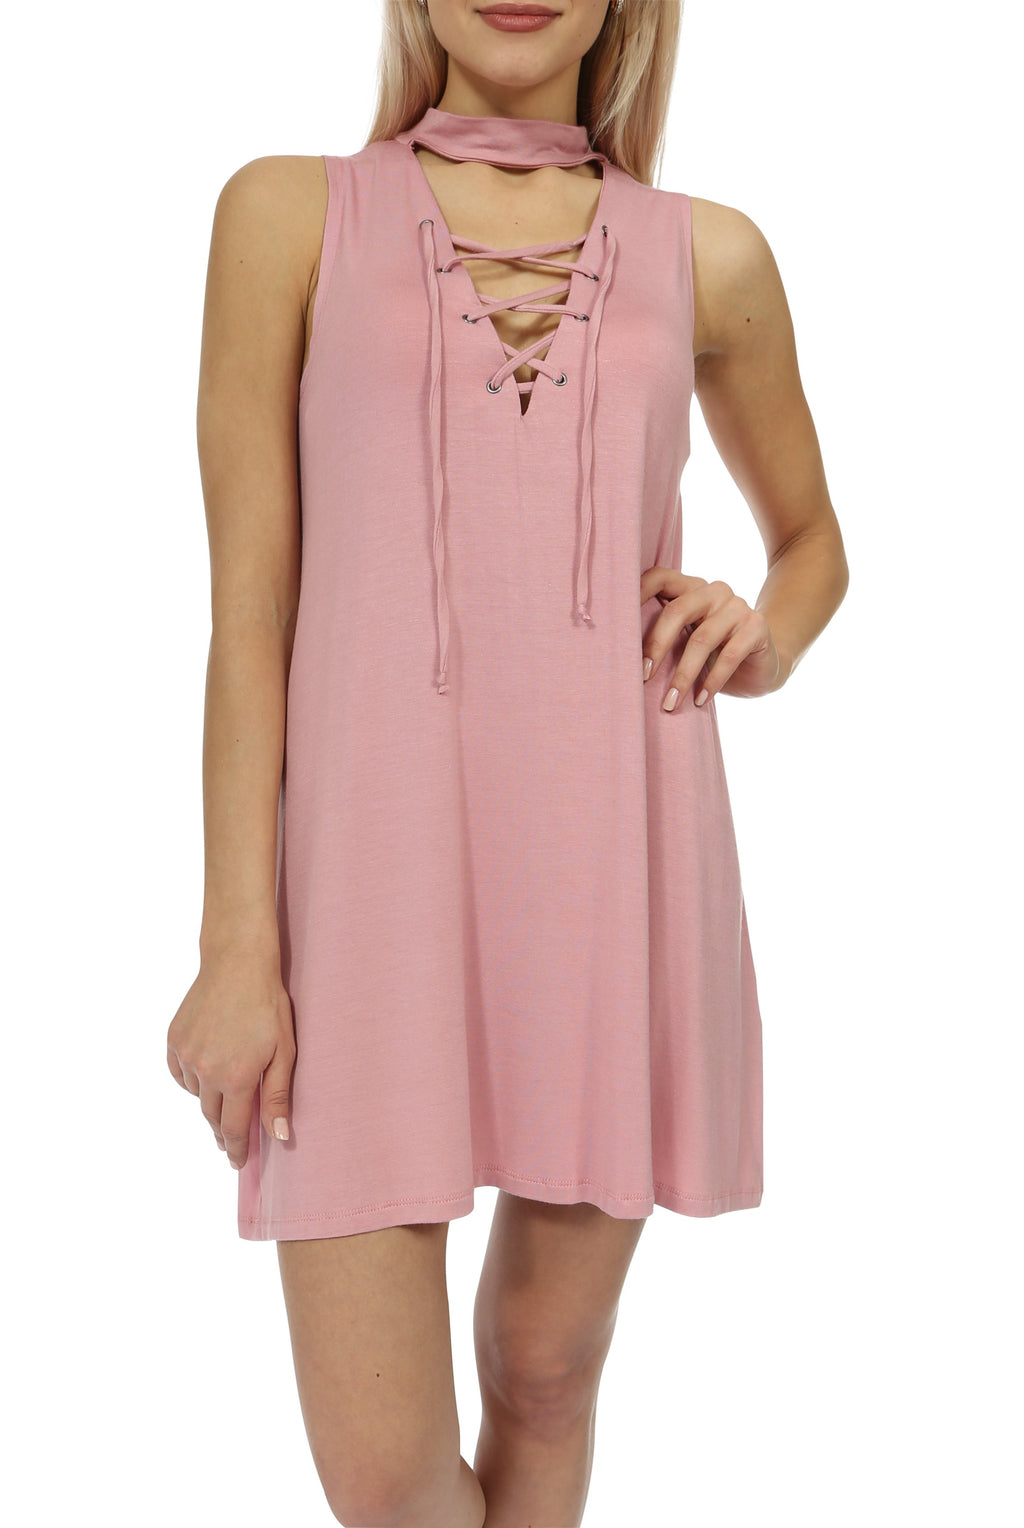 Teeze Me | Sleeveless Mock Neck Lace-Up Shift Dress | Dark Pink